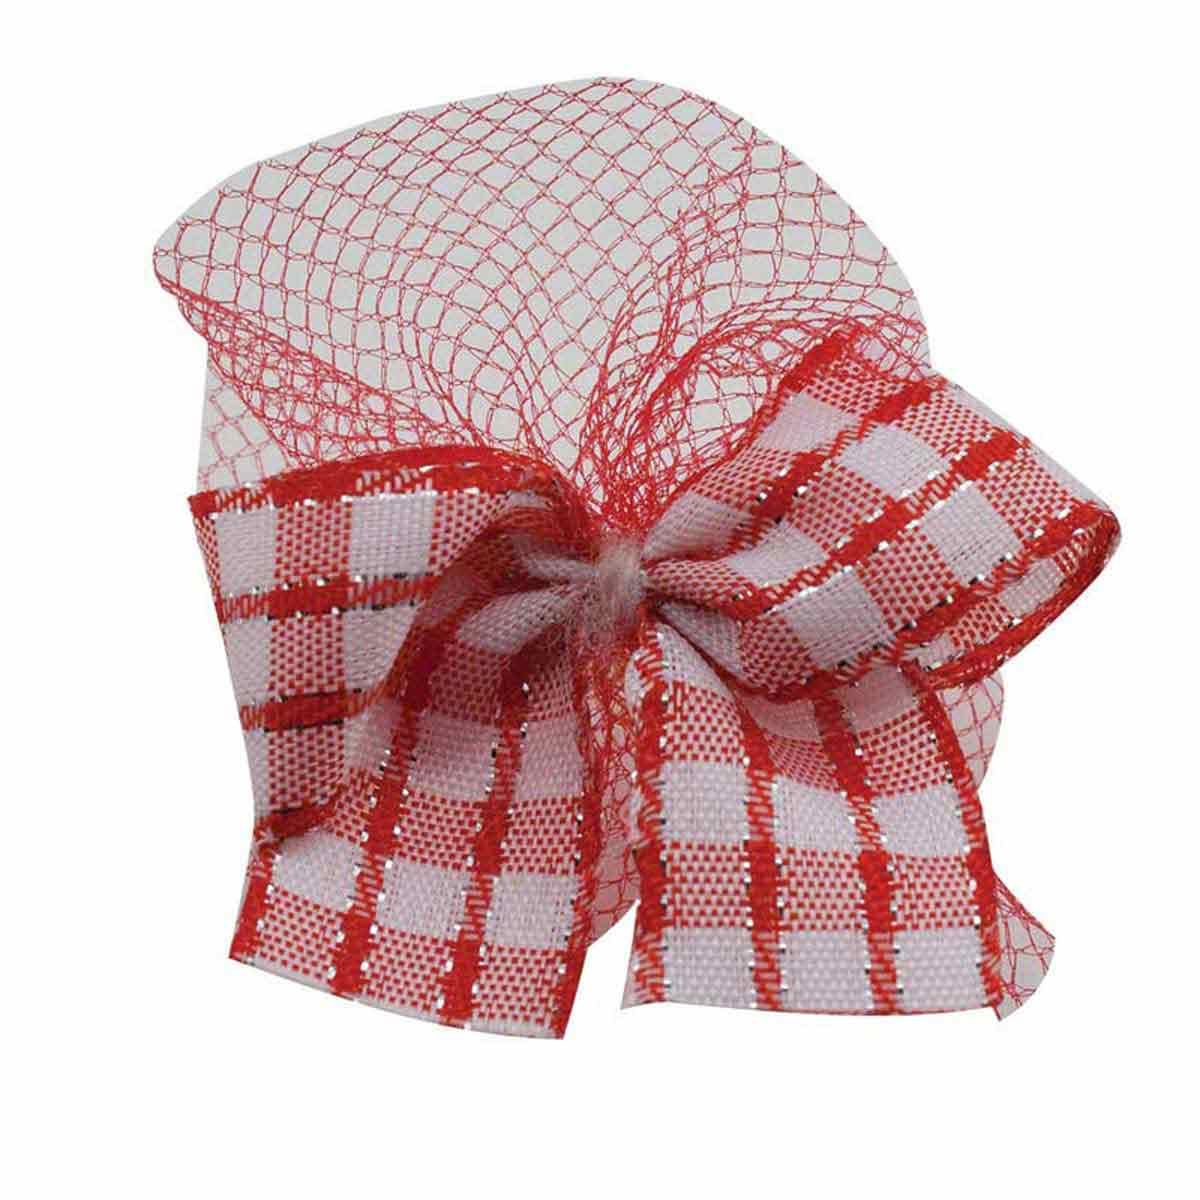 Fancy Finishes Plaid Bows With Tulle for Dog Grooming - 100 Count Bag